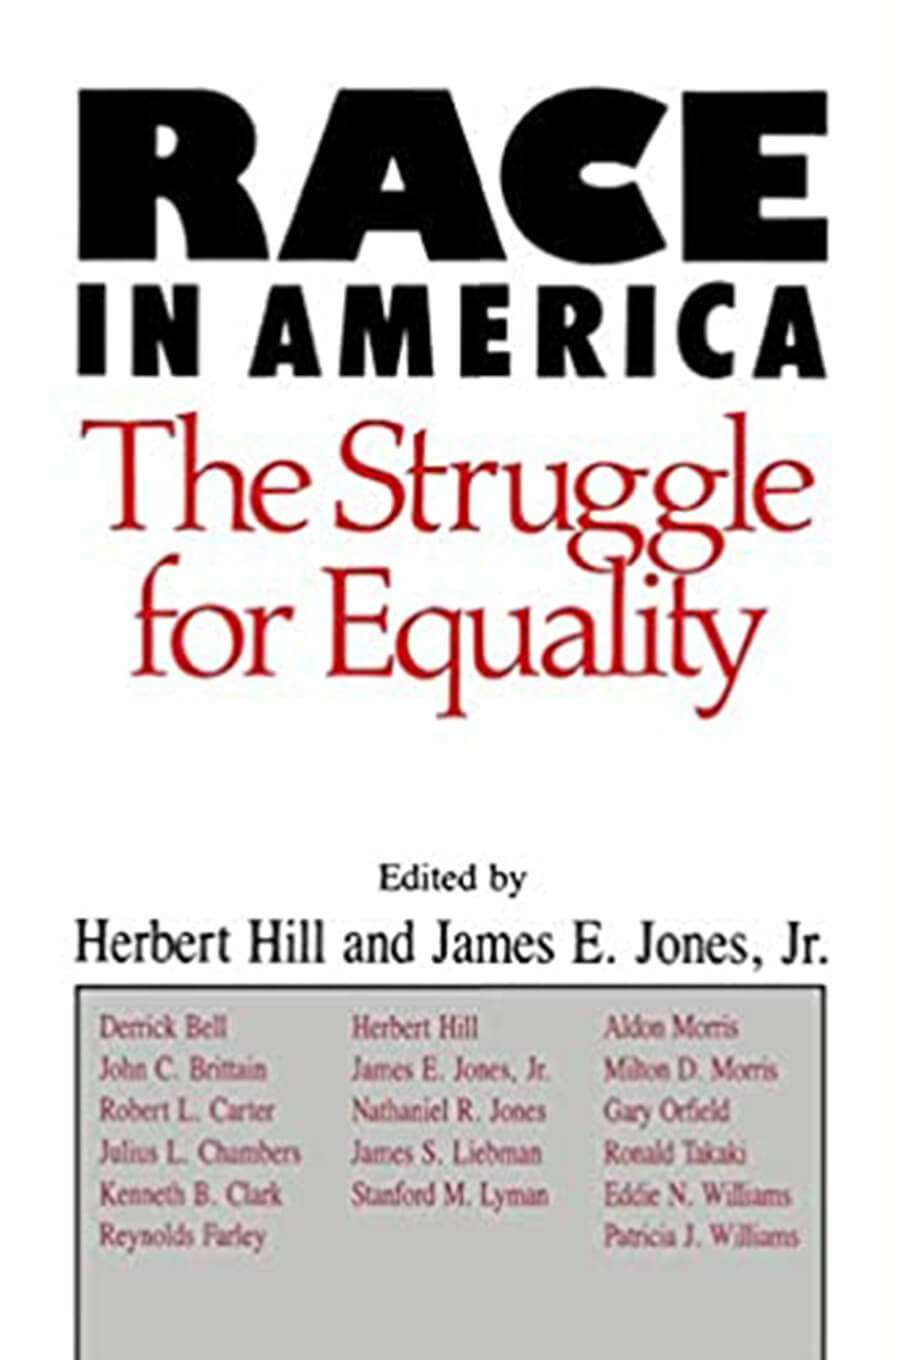 Race in America The Struggle for Equality book cover, author Herbit Hill